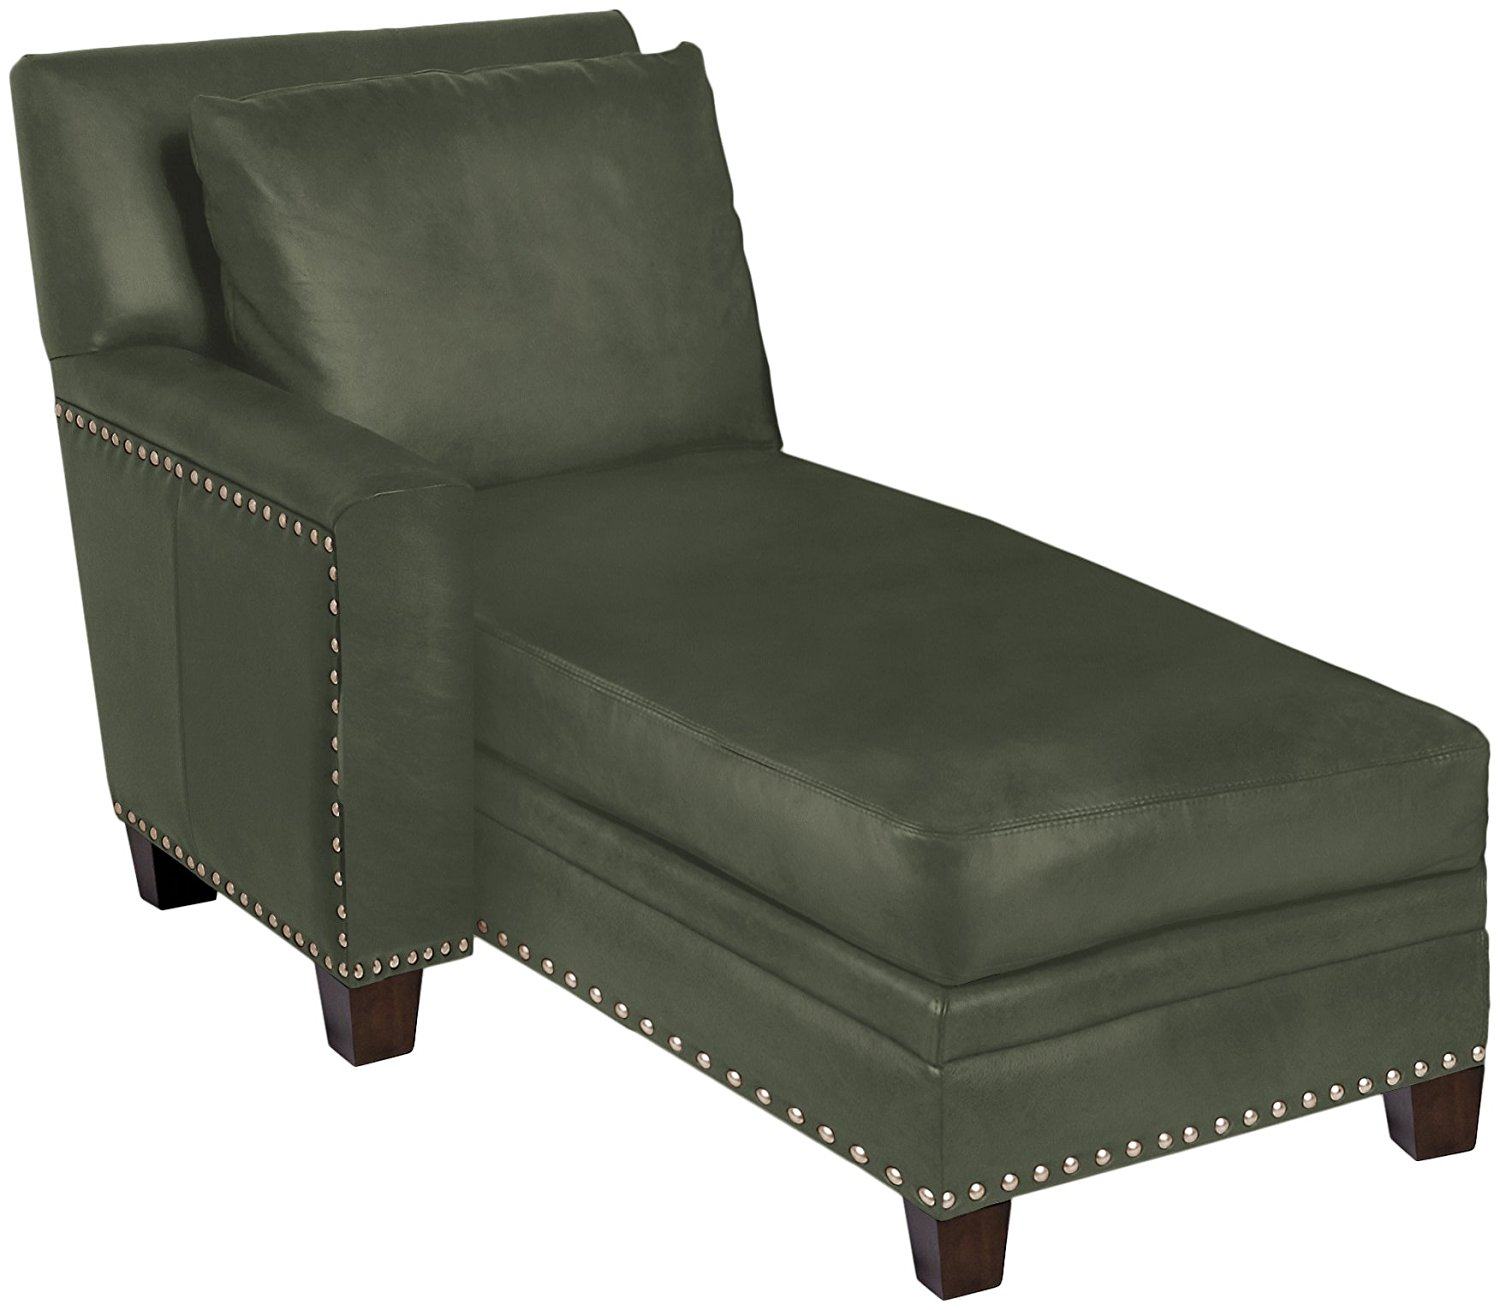 Omnia Leather Glendora Left Arm Chaise in Leather, with Nail Head, Navajo Hunter